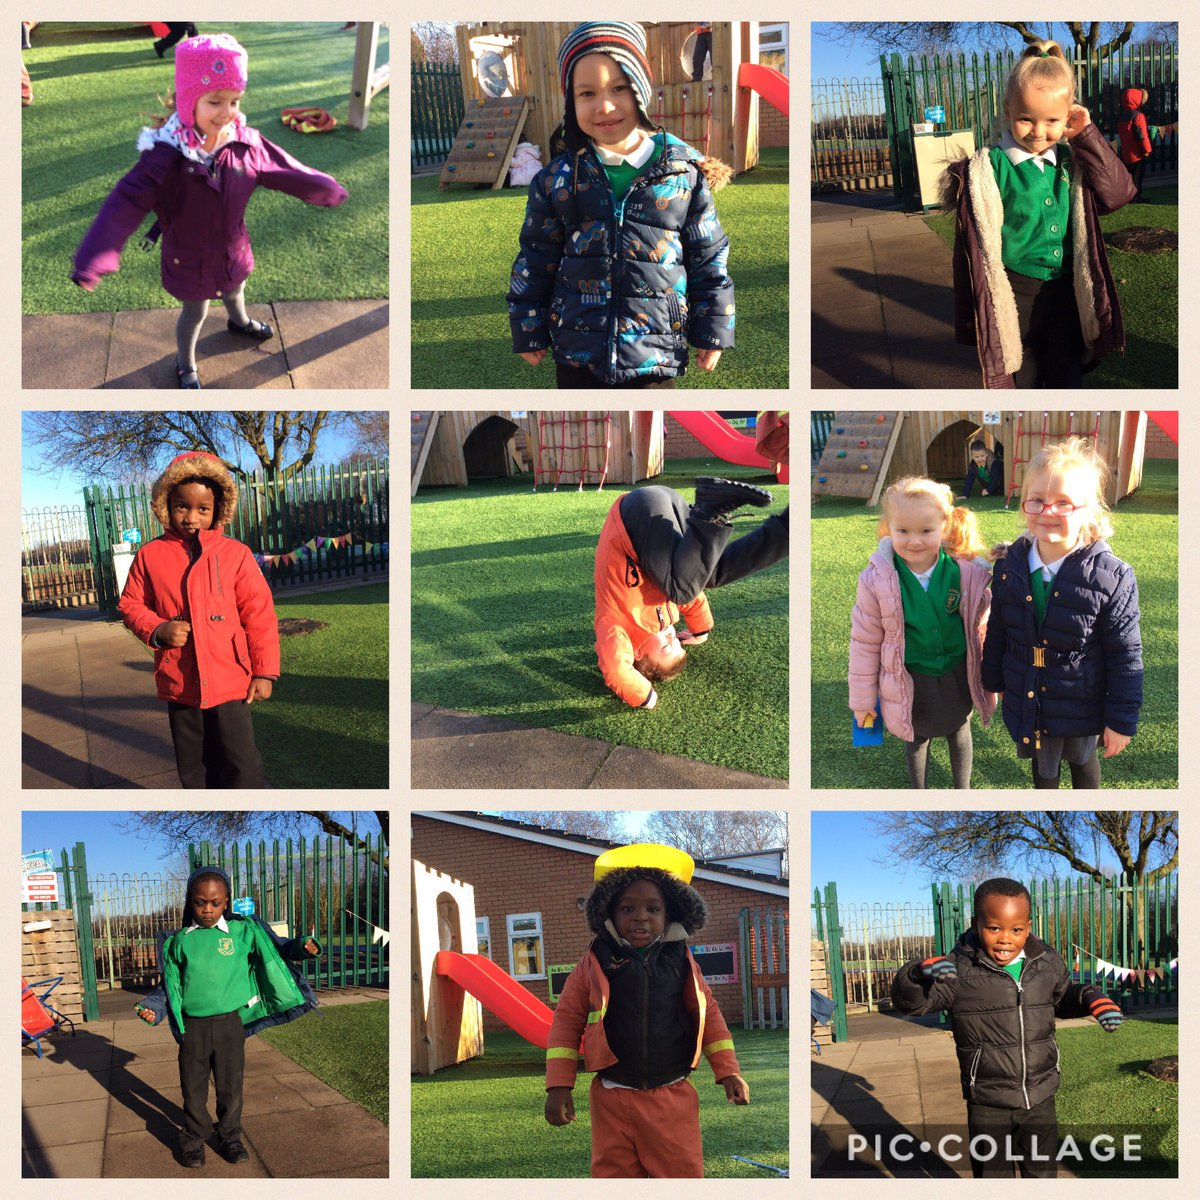 We were thinking about 'What makes us special?' in Reception this morning. We are all very special and have lots of talents. #superstars ⭐️